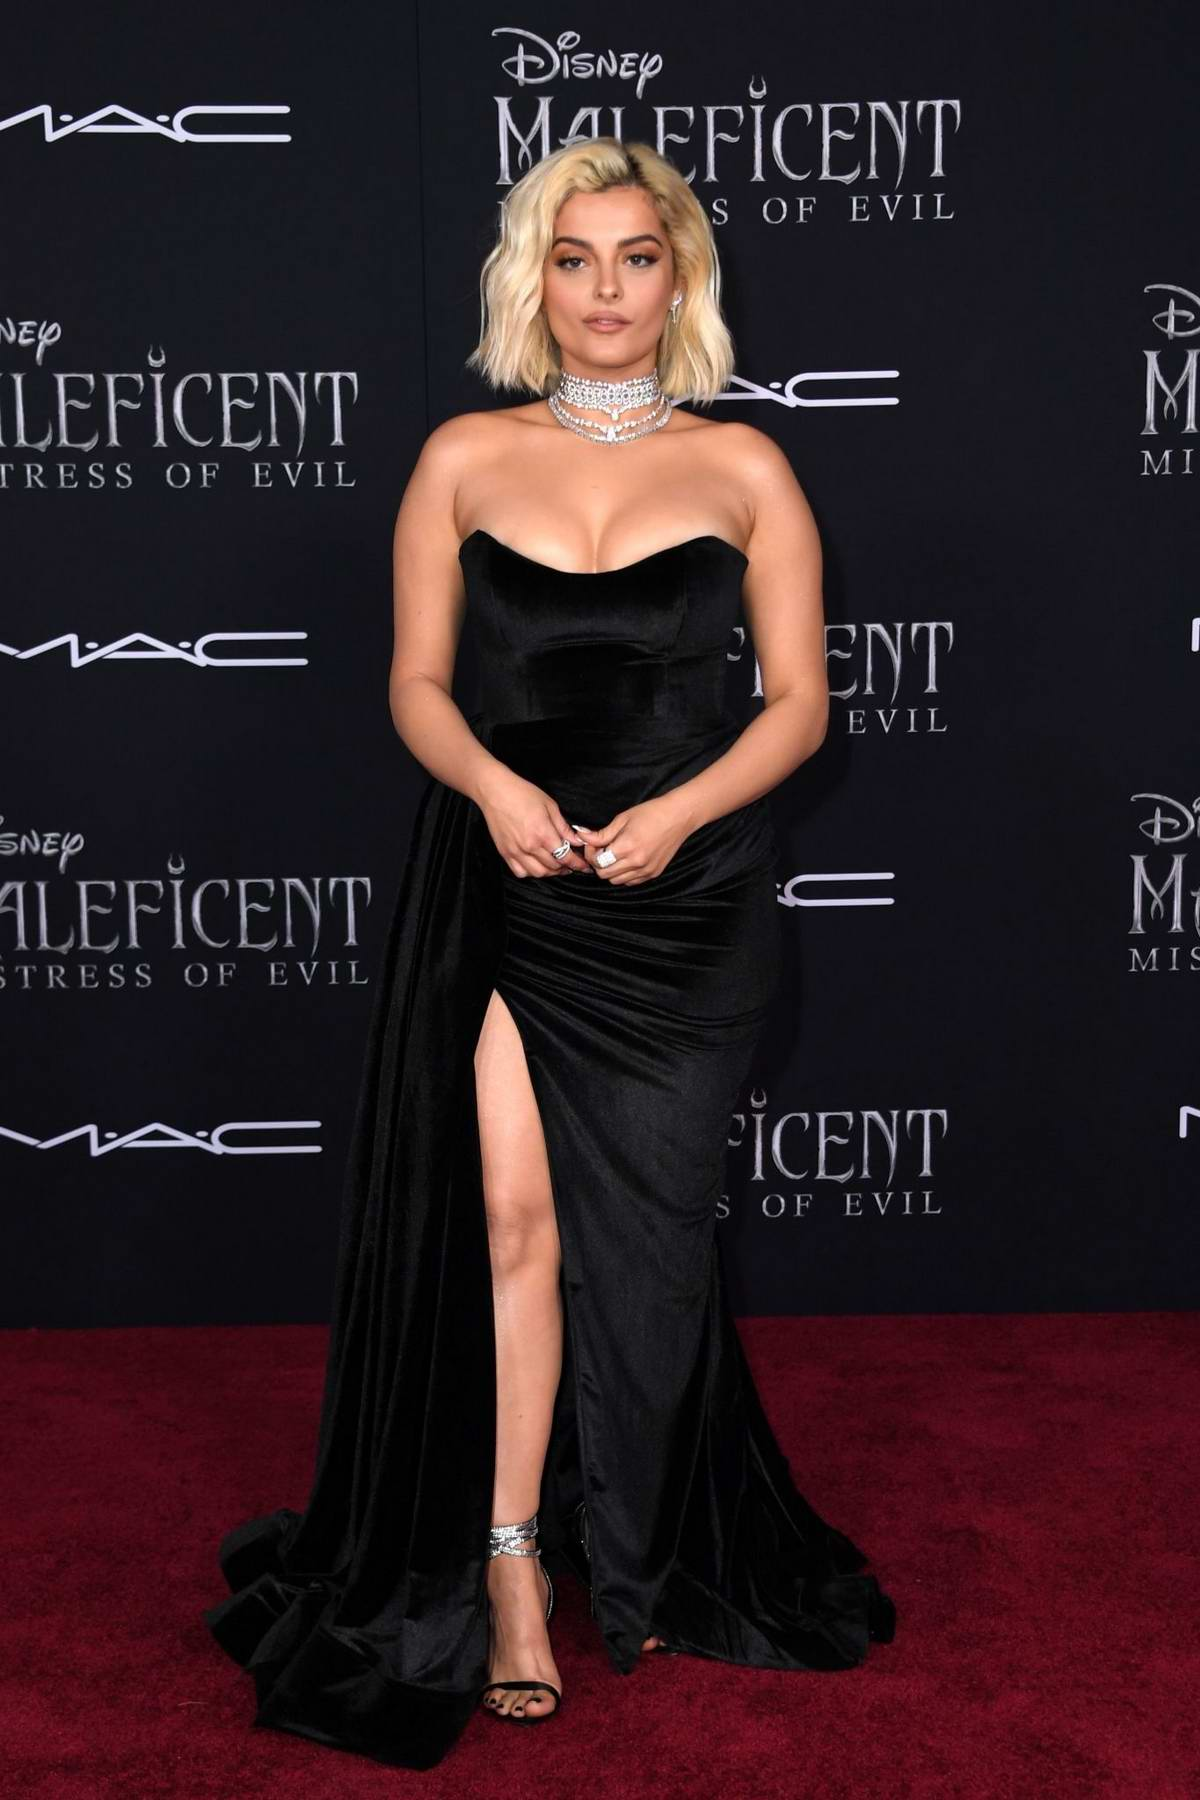 Bebe Rexha attends the World Premiere of Disney's 'Maleficent: Mistress of Evil' at El Capitan Theatre in Los Angeles